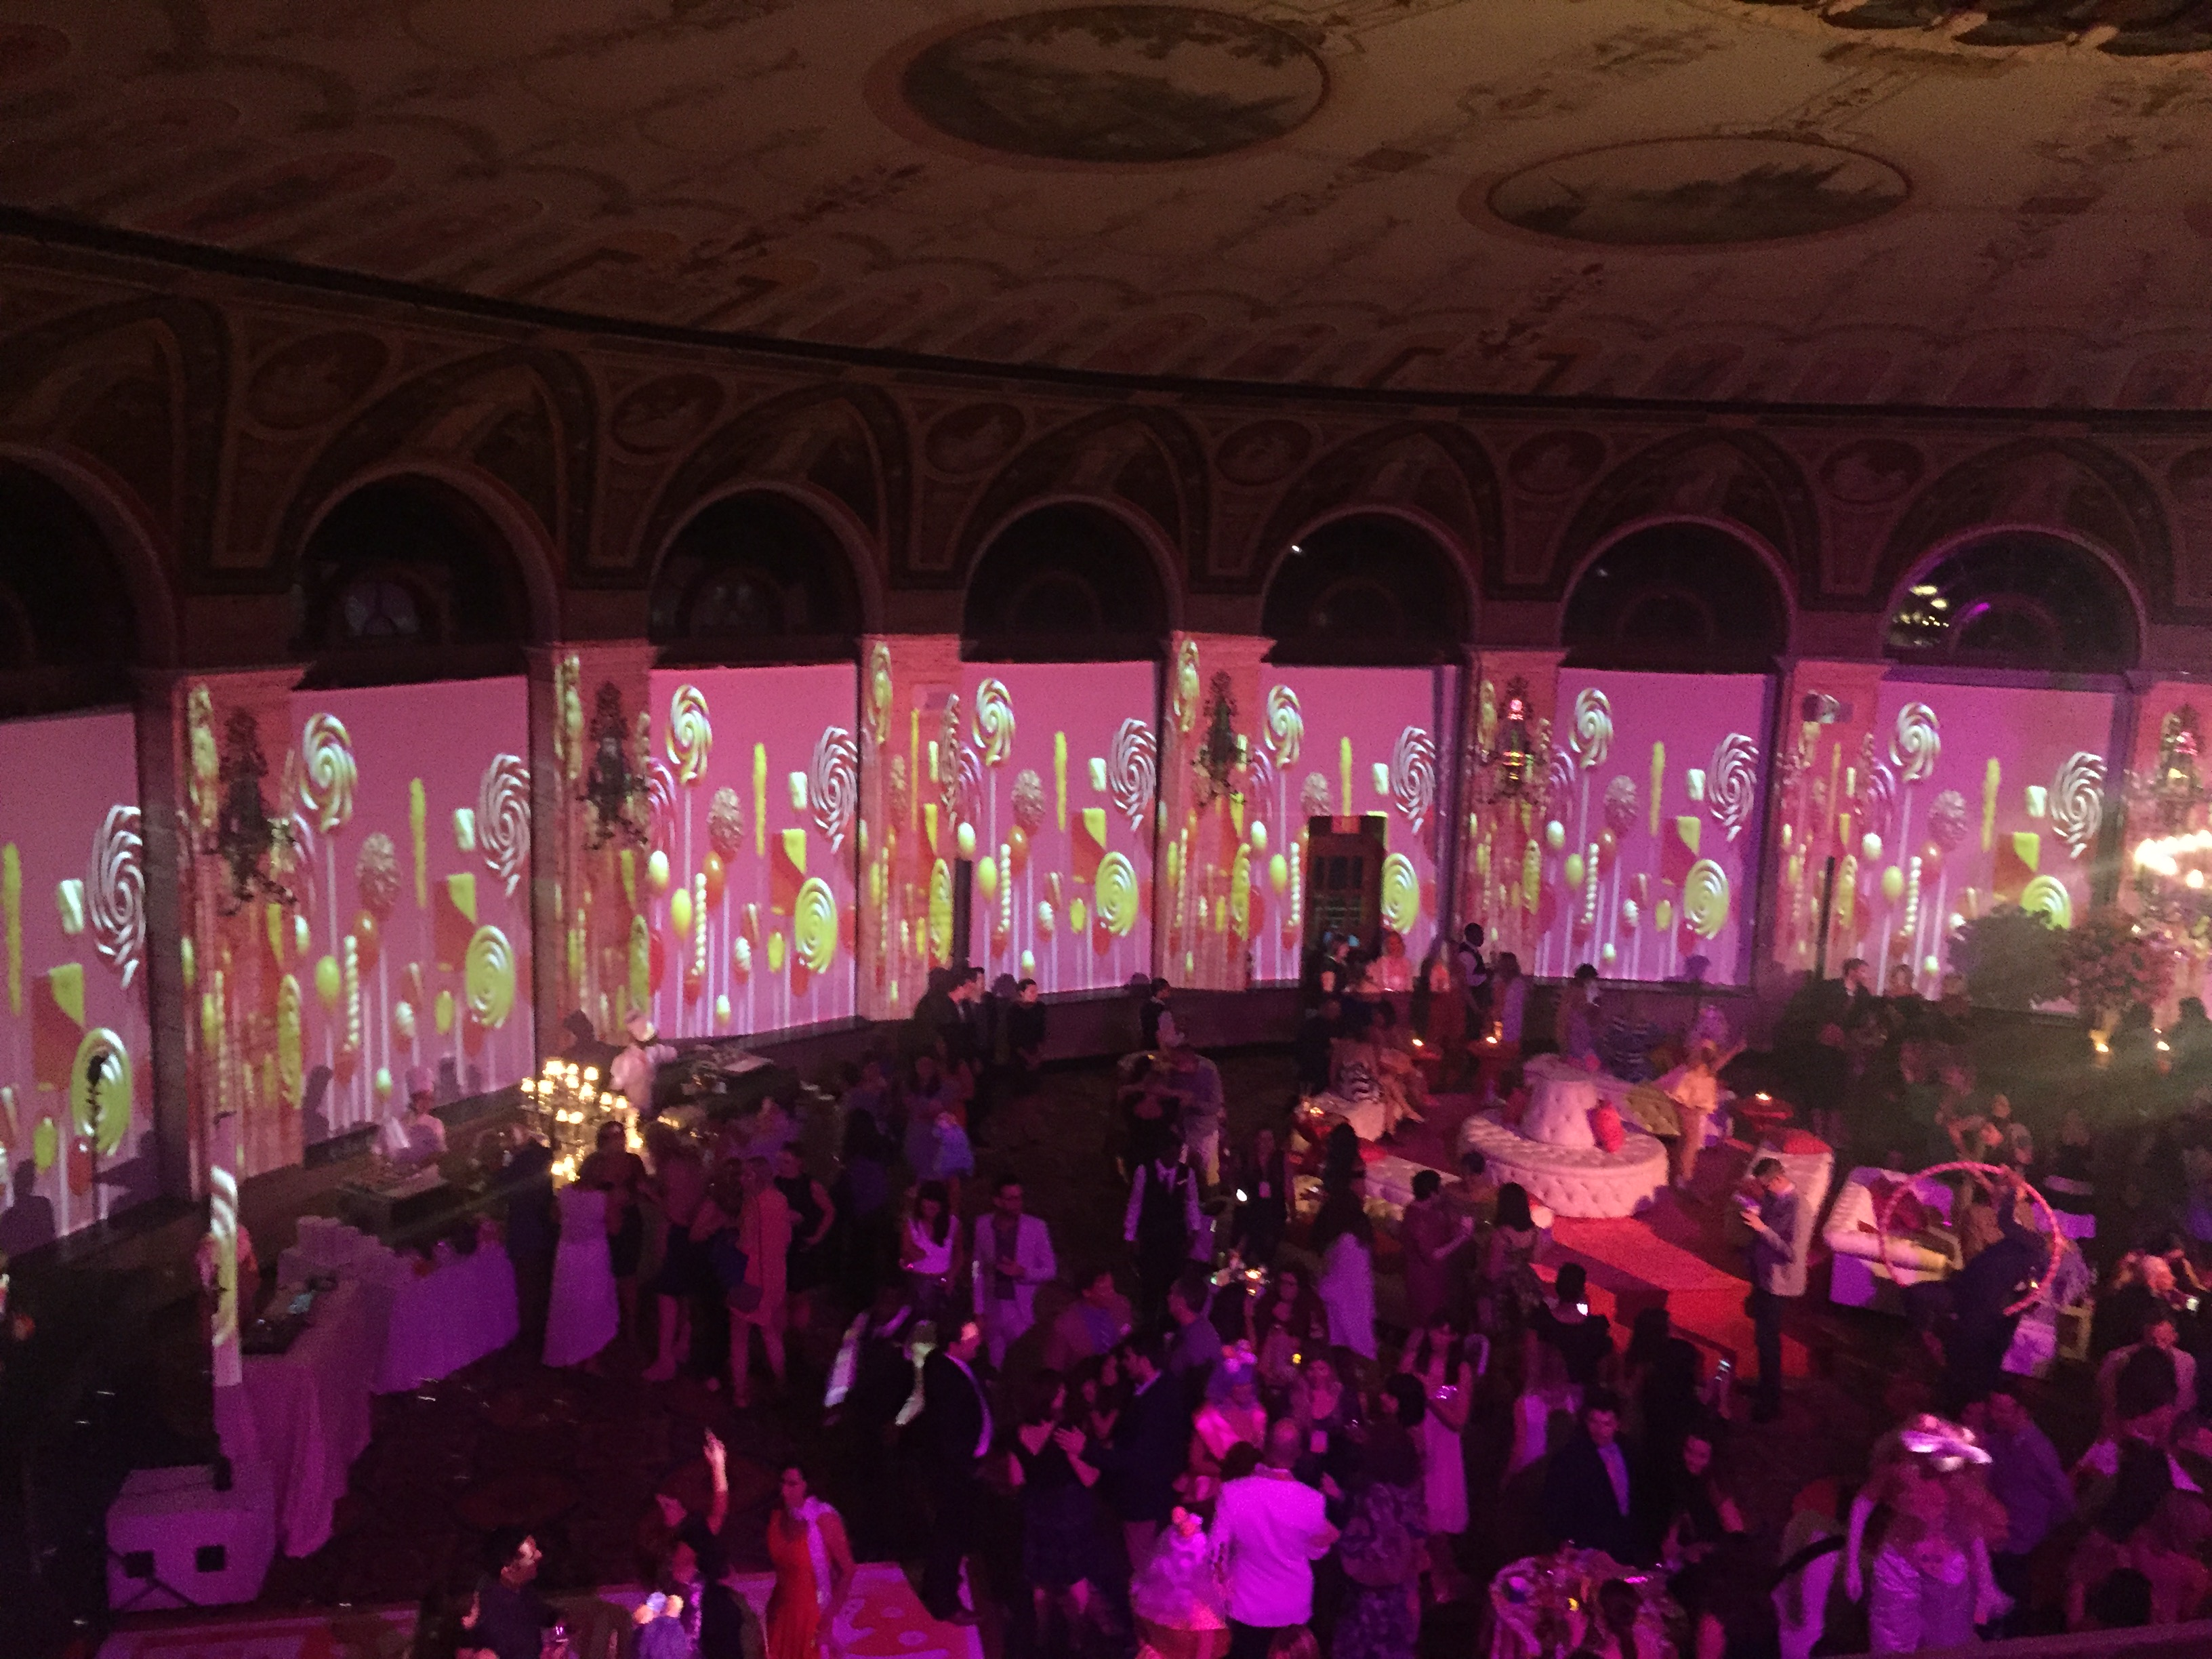 Video Mapping Room in 360